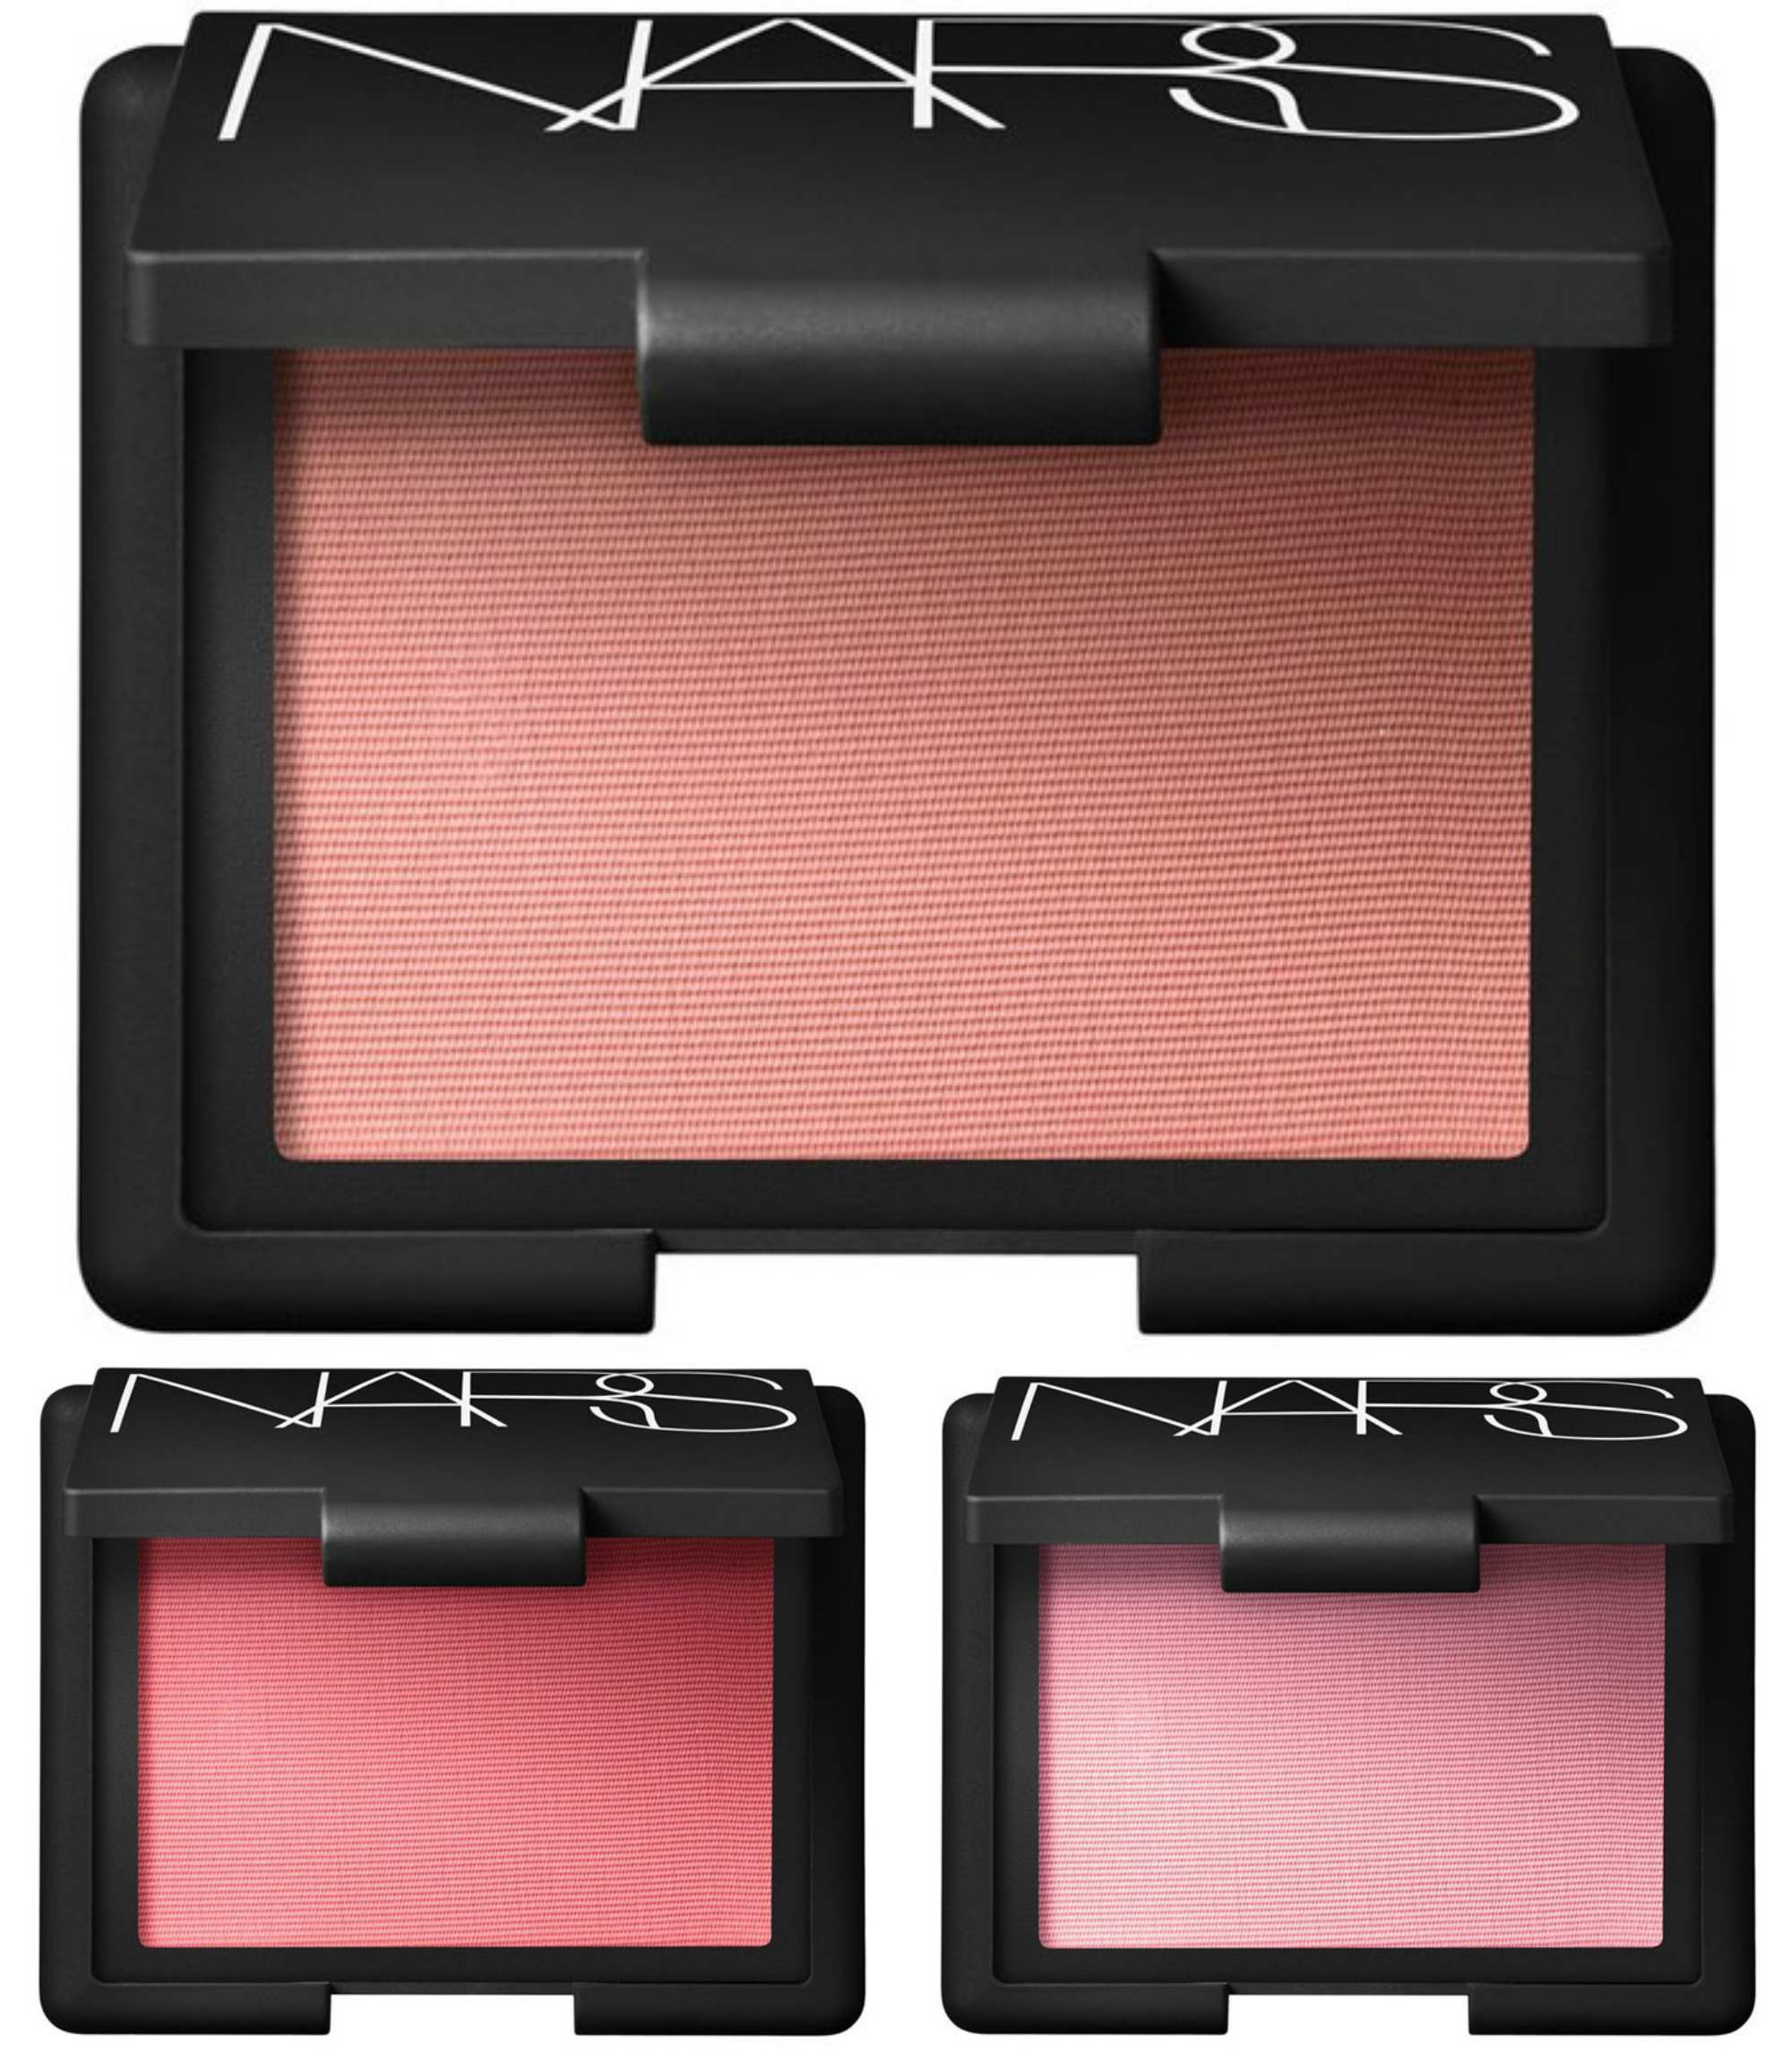 Nars Pop Goes Easel Blush Makeup Beautyalmanac On Original Brand